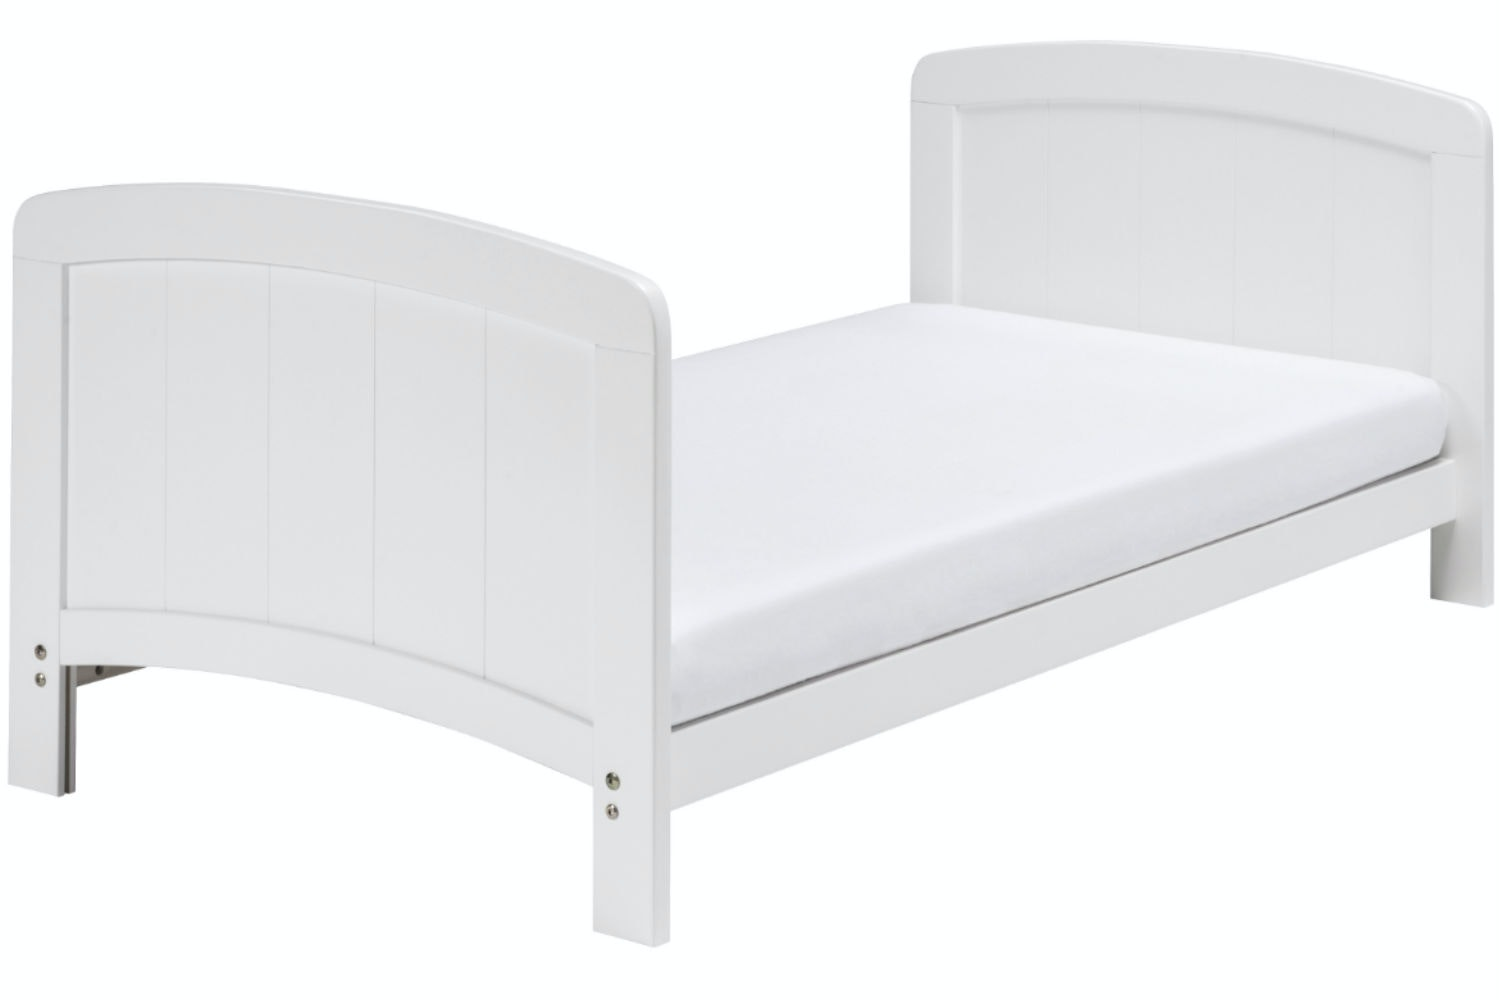 Venice 2 in 1 Cot Bed | White